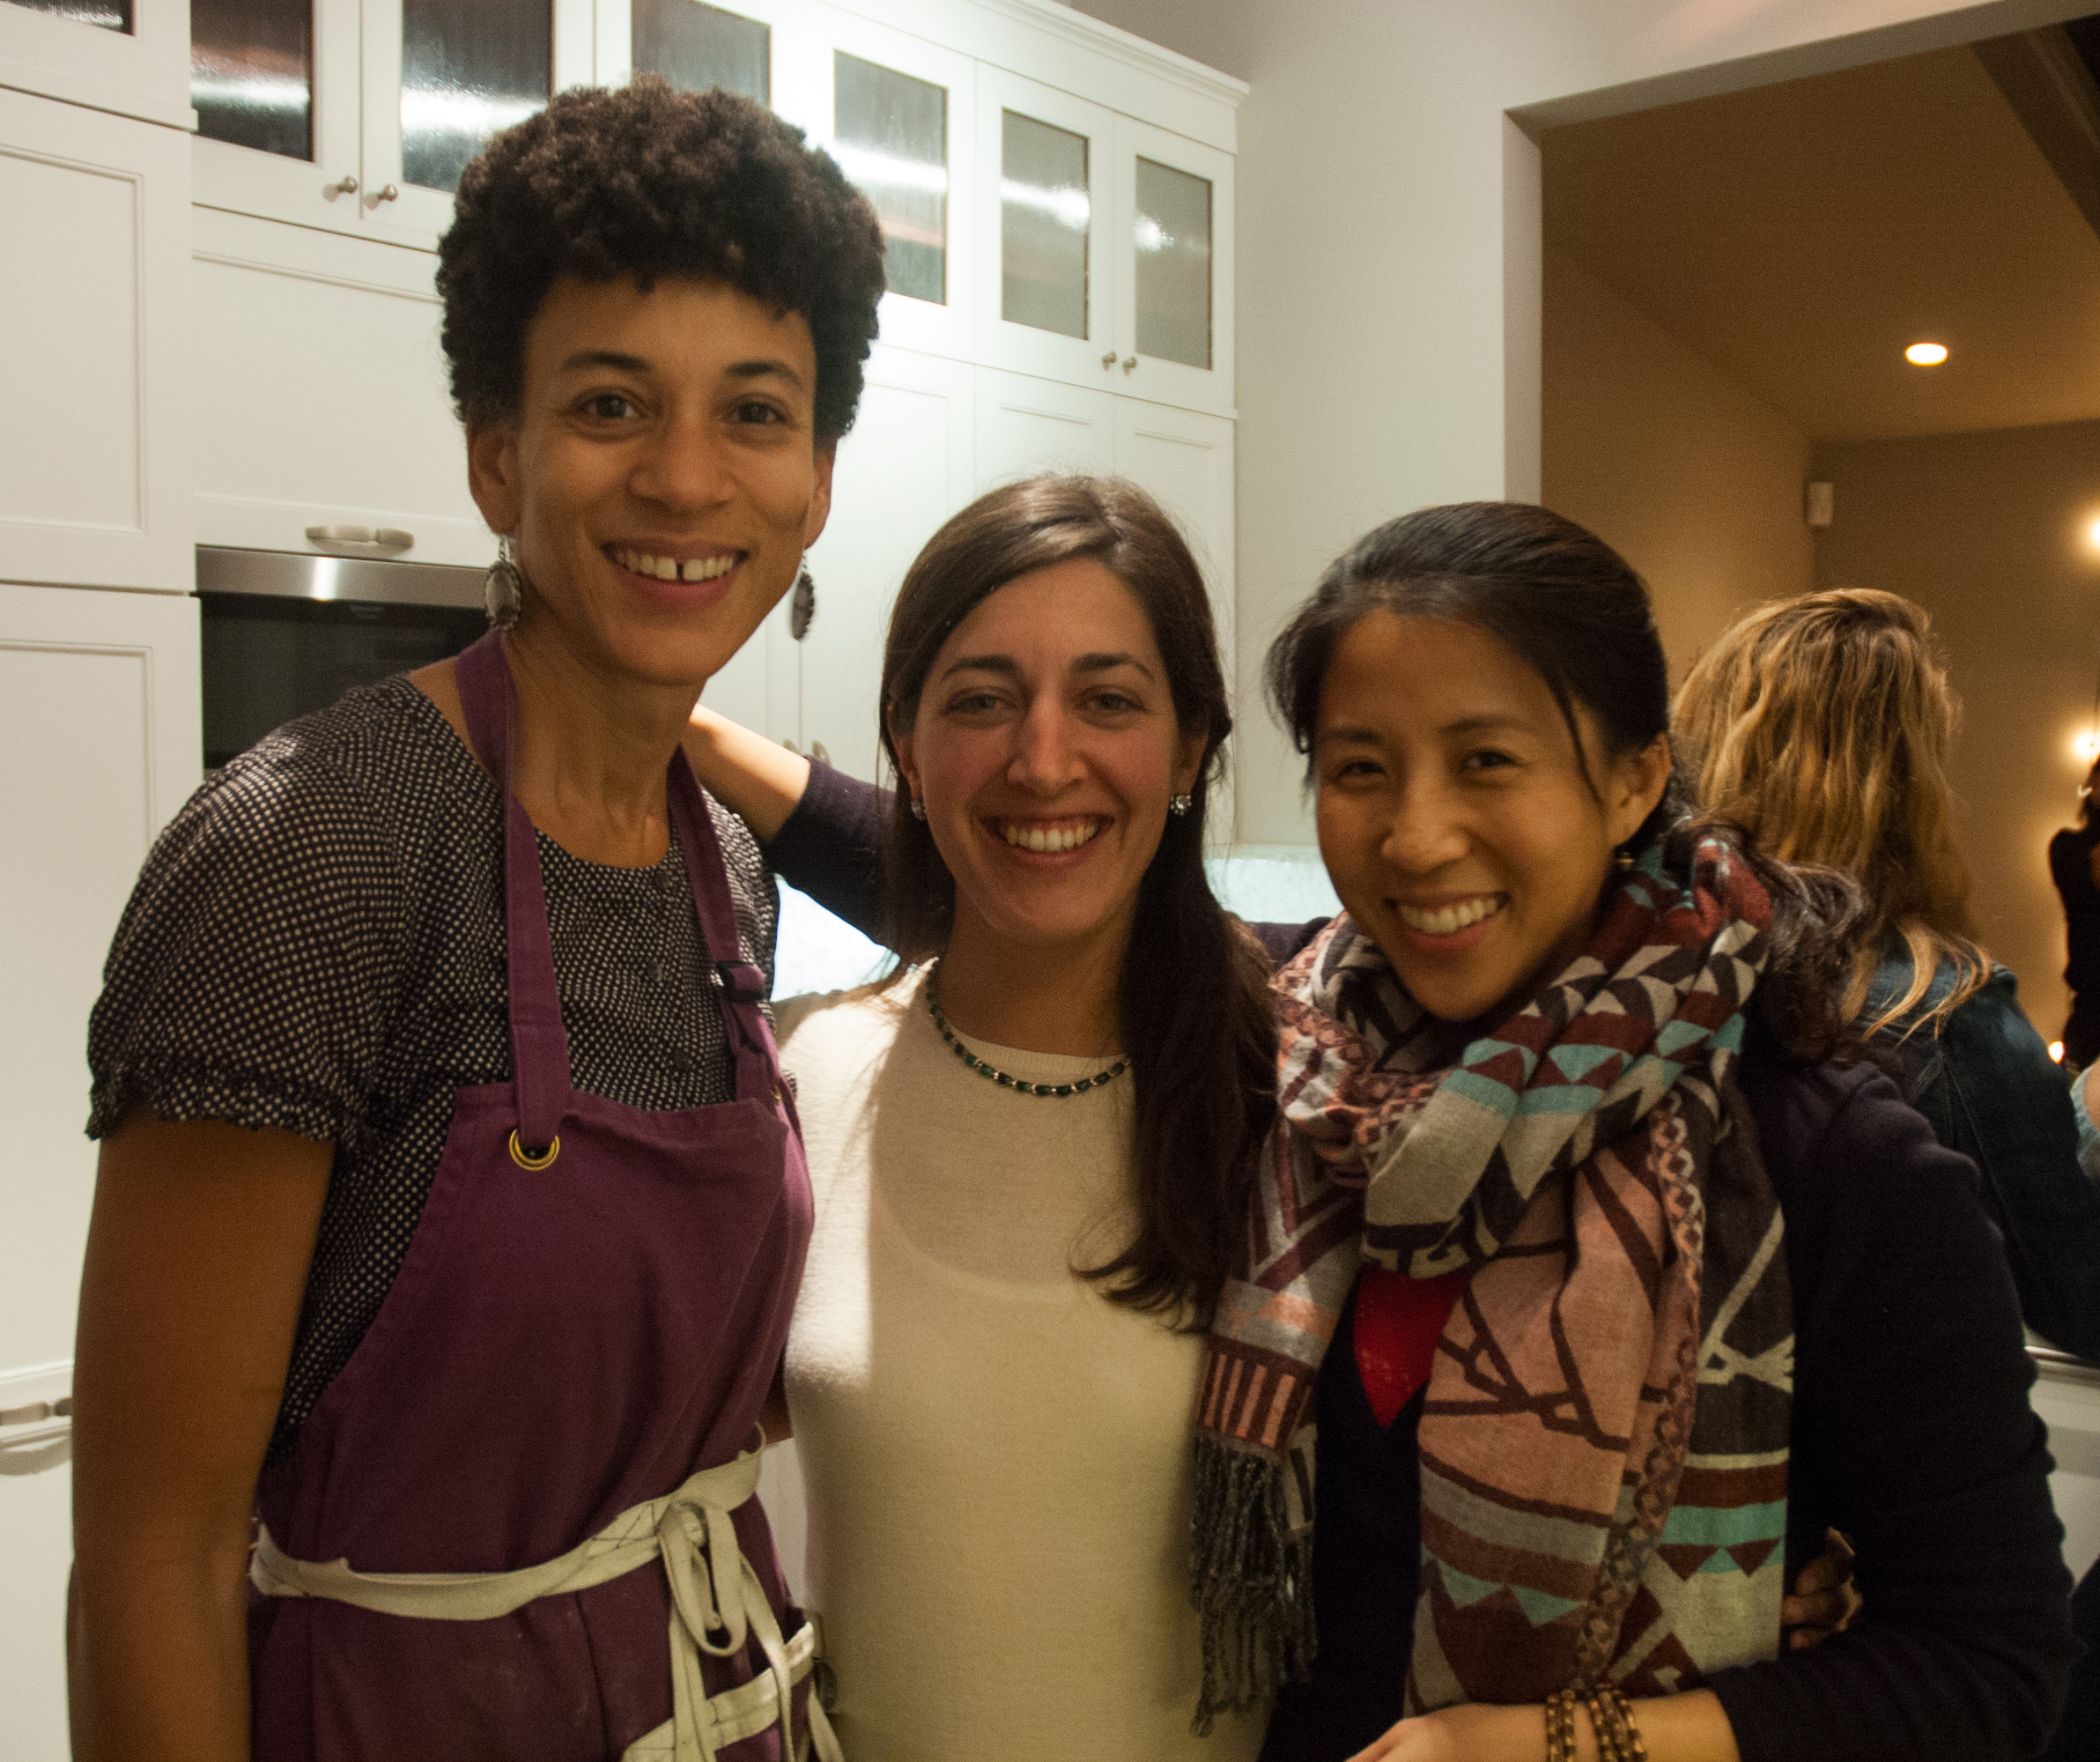 Jocelyn Jackson (left) of Grace Hearth, who prepared the food for the event, with Paige Phinney and Pei-Ru Ko.